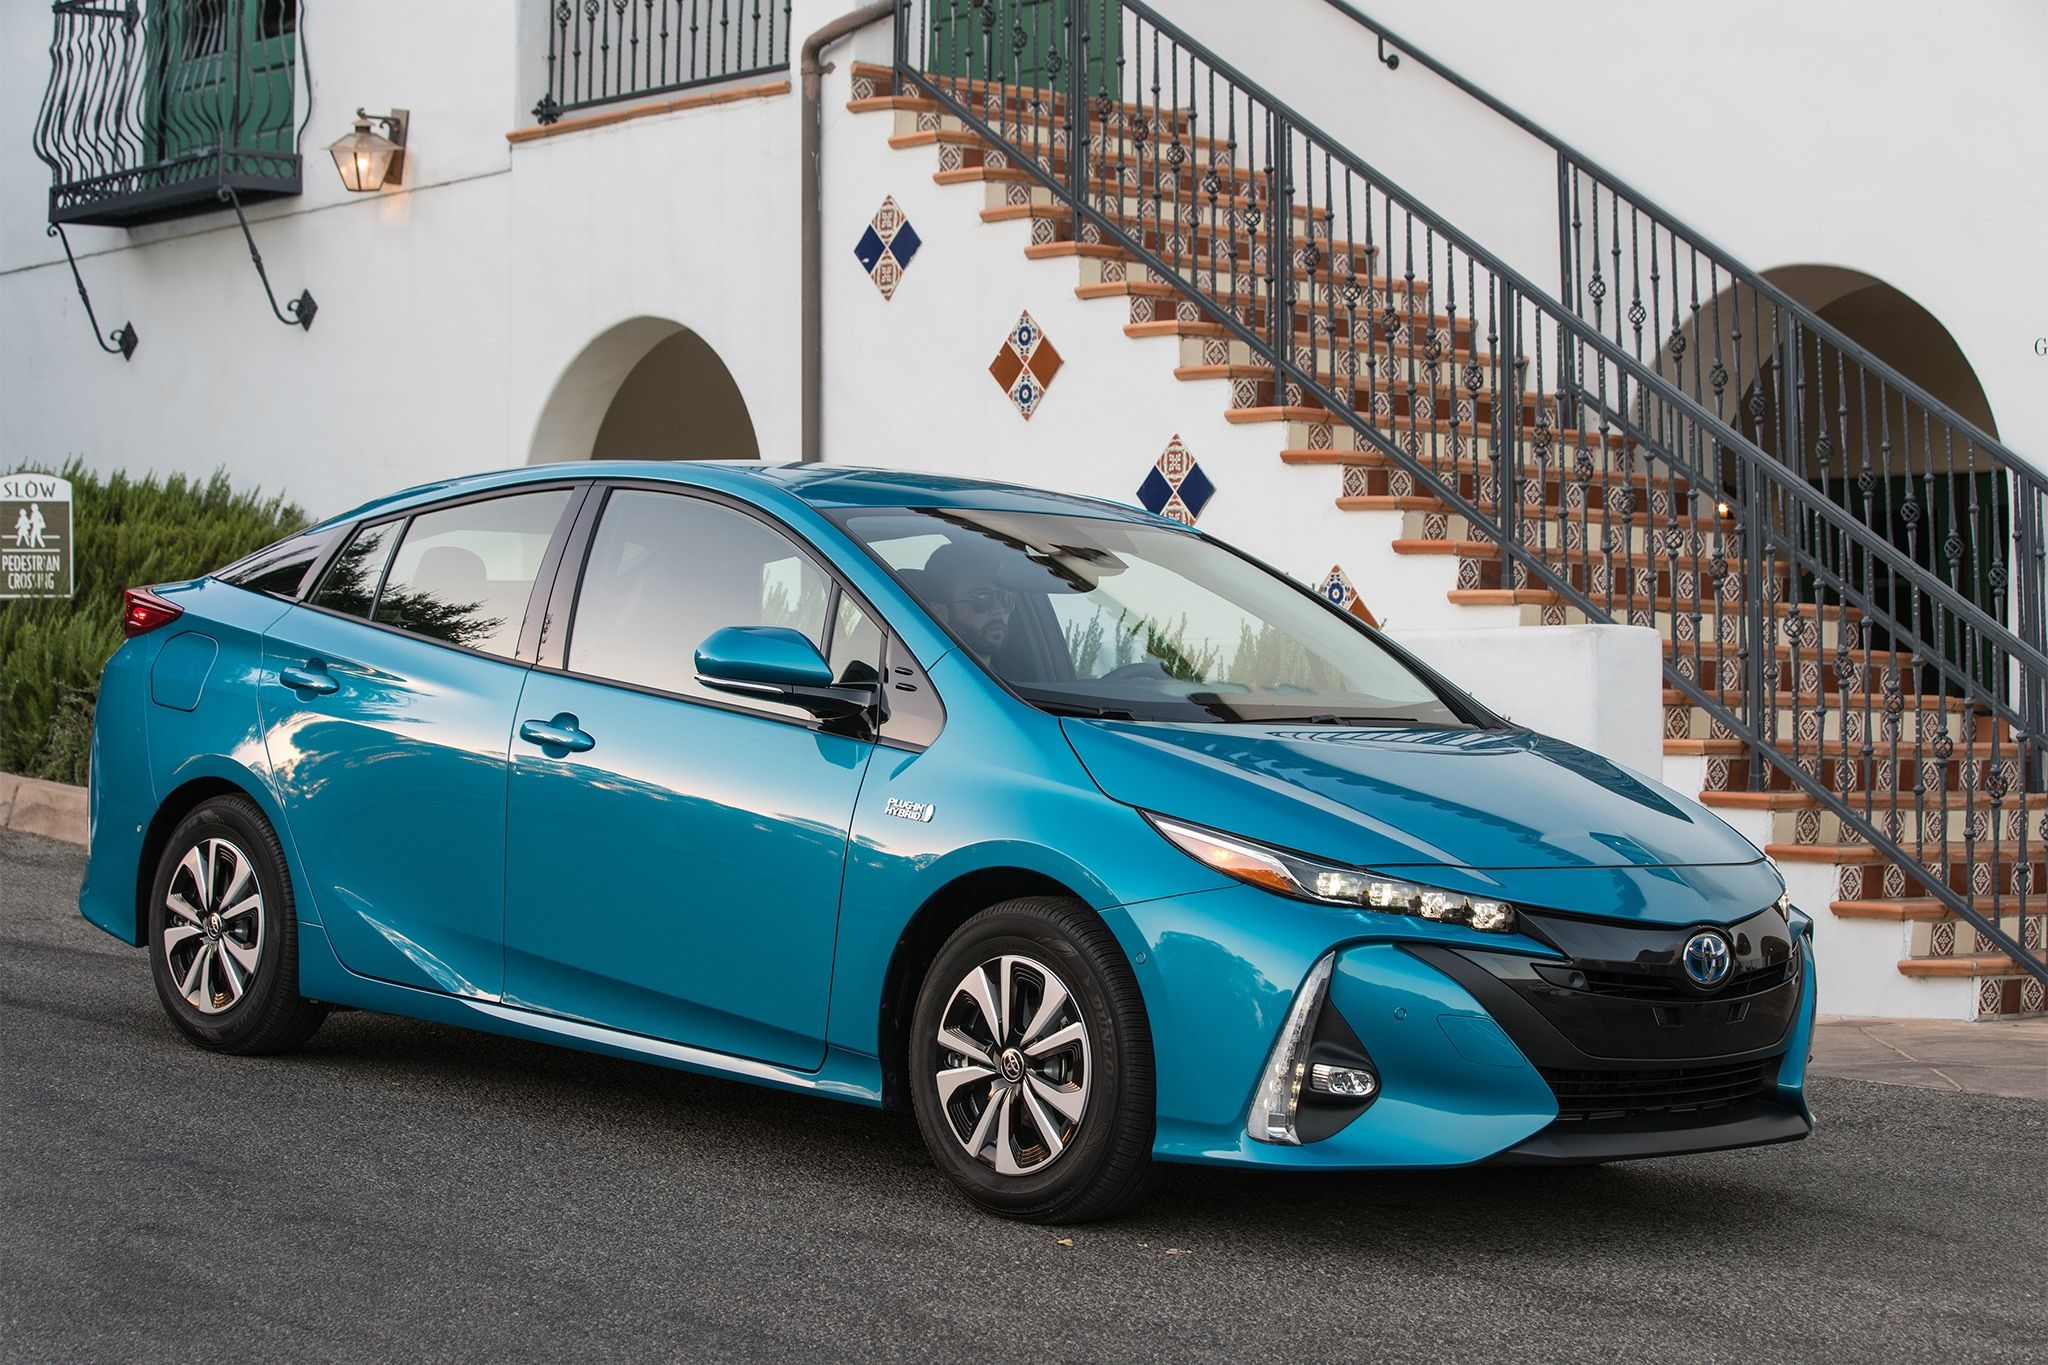 2017 Toyota Prius Prime Advanced I Thought It Was A Transformers